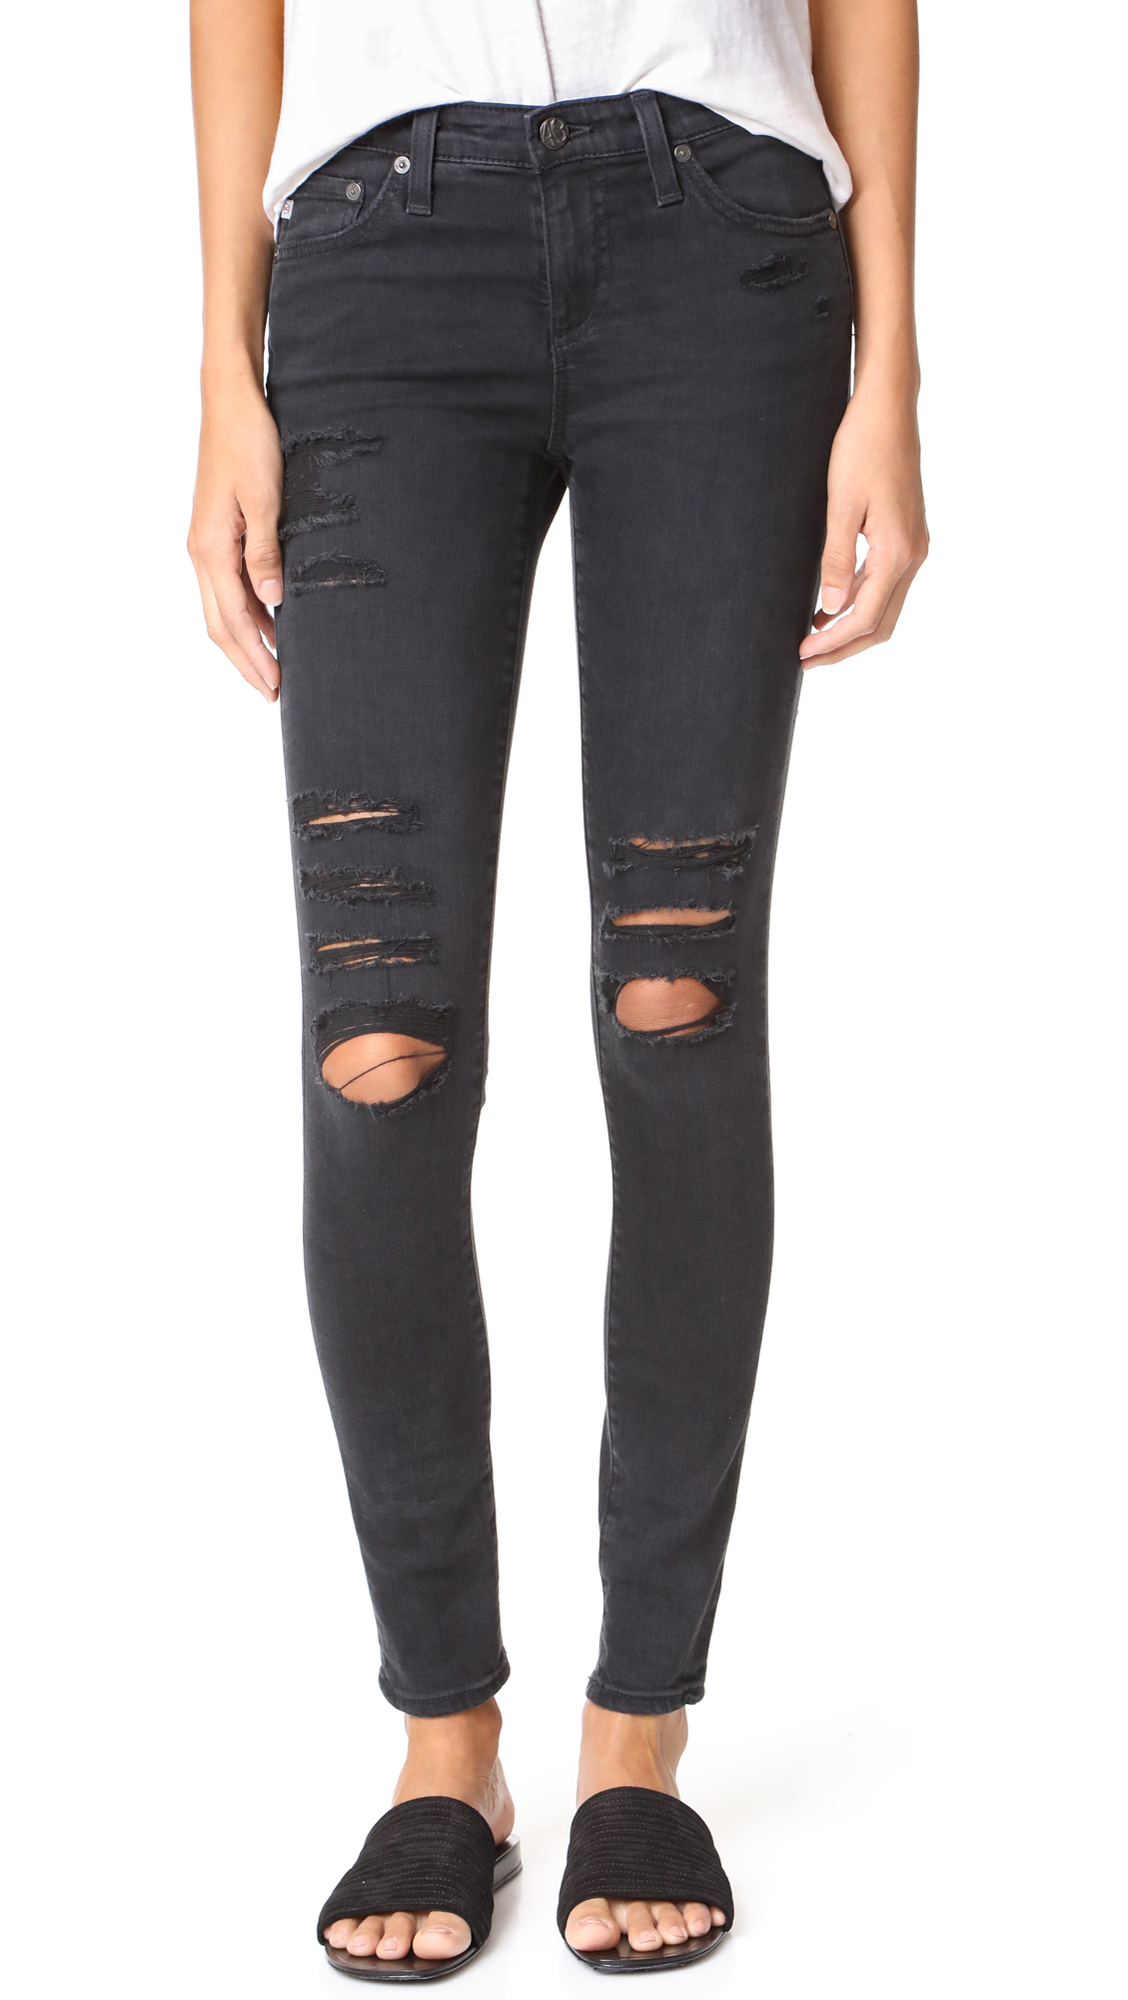 AG The Legging Ankle Jeans - 3 Years Requiem